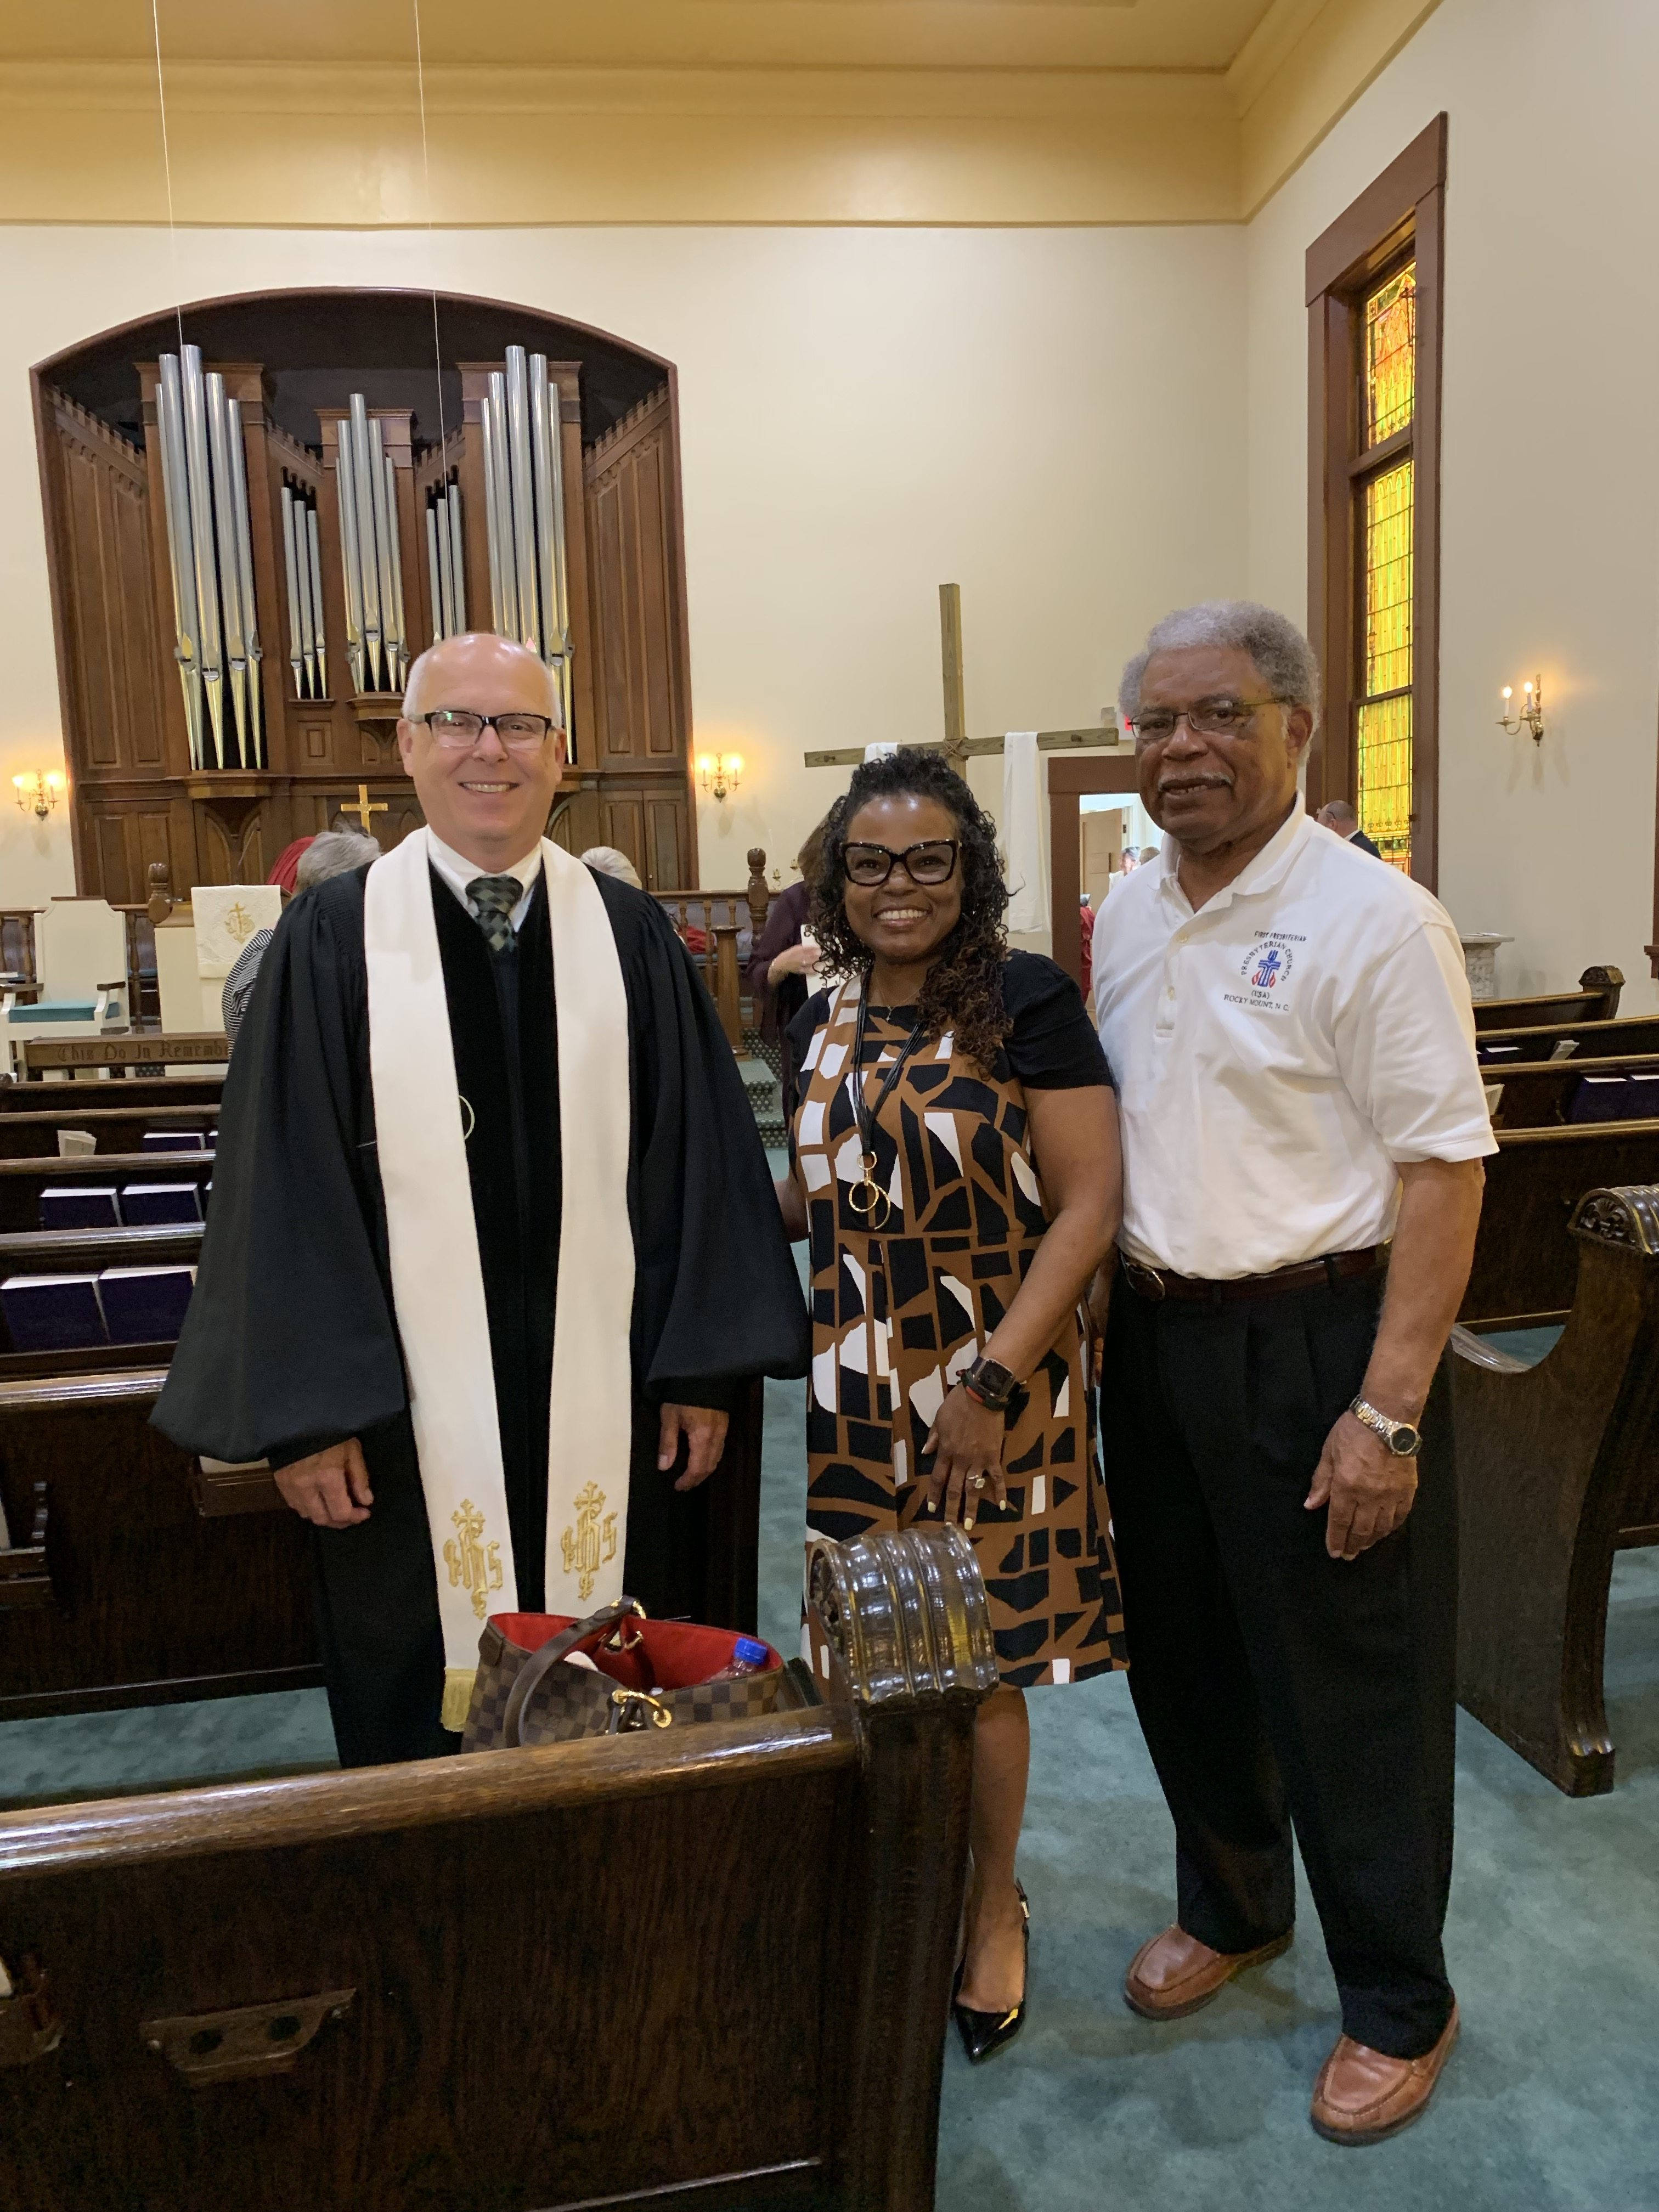 Cheryl Barnes and long-term volunteer John Etheredge with Pastor Scott Hookey at Madison Presbyterian Church in Madison, Indiana.